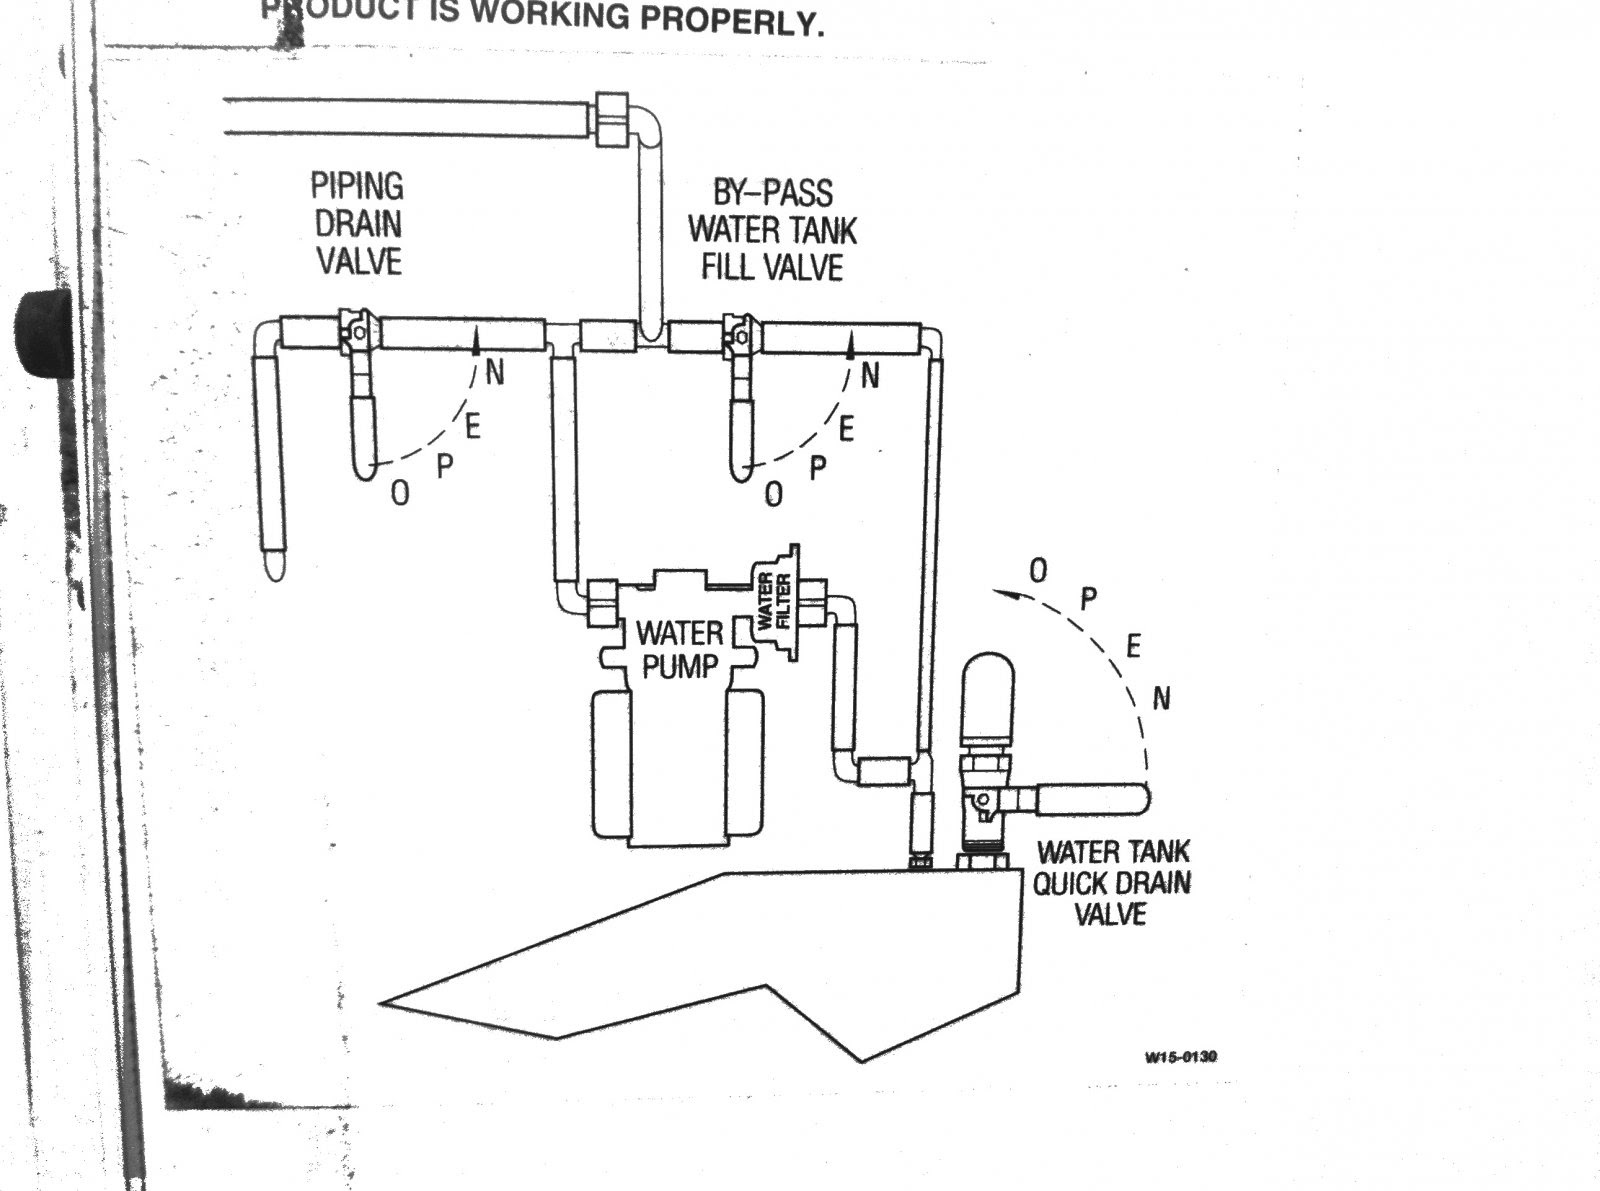 Plumbing Diagram - iRV2 Forums